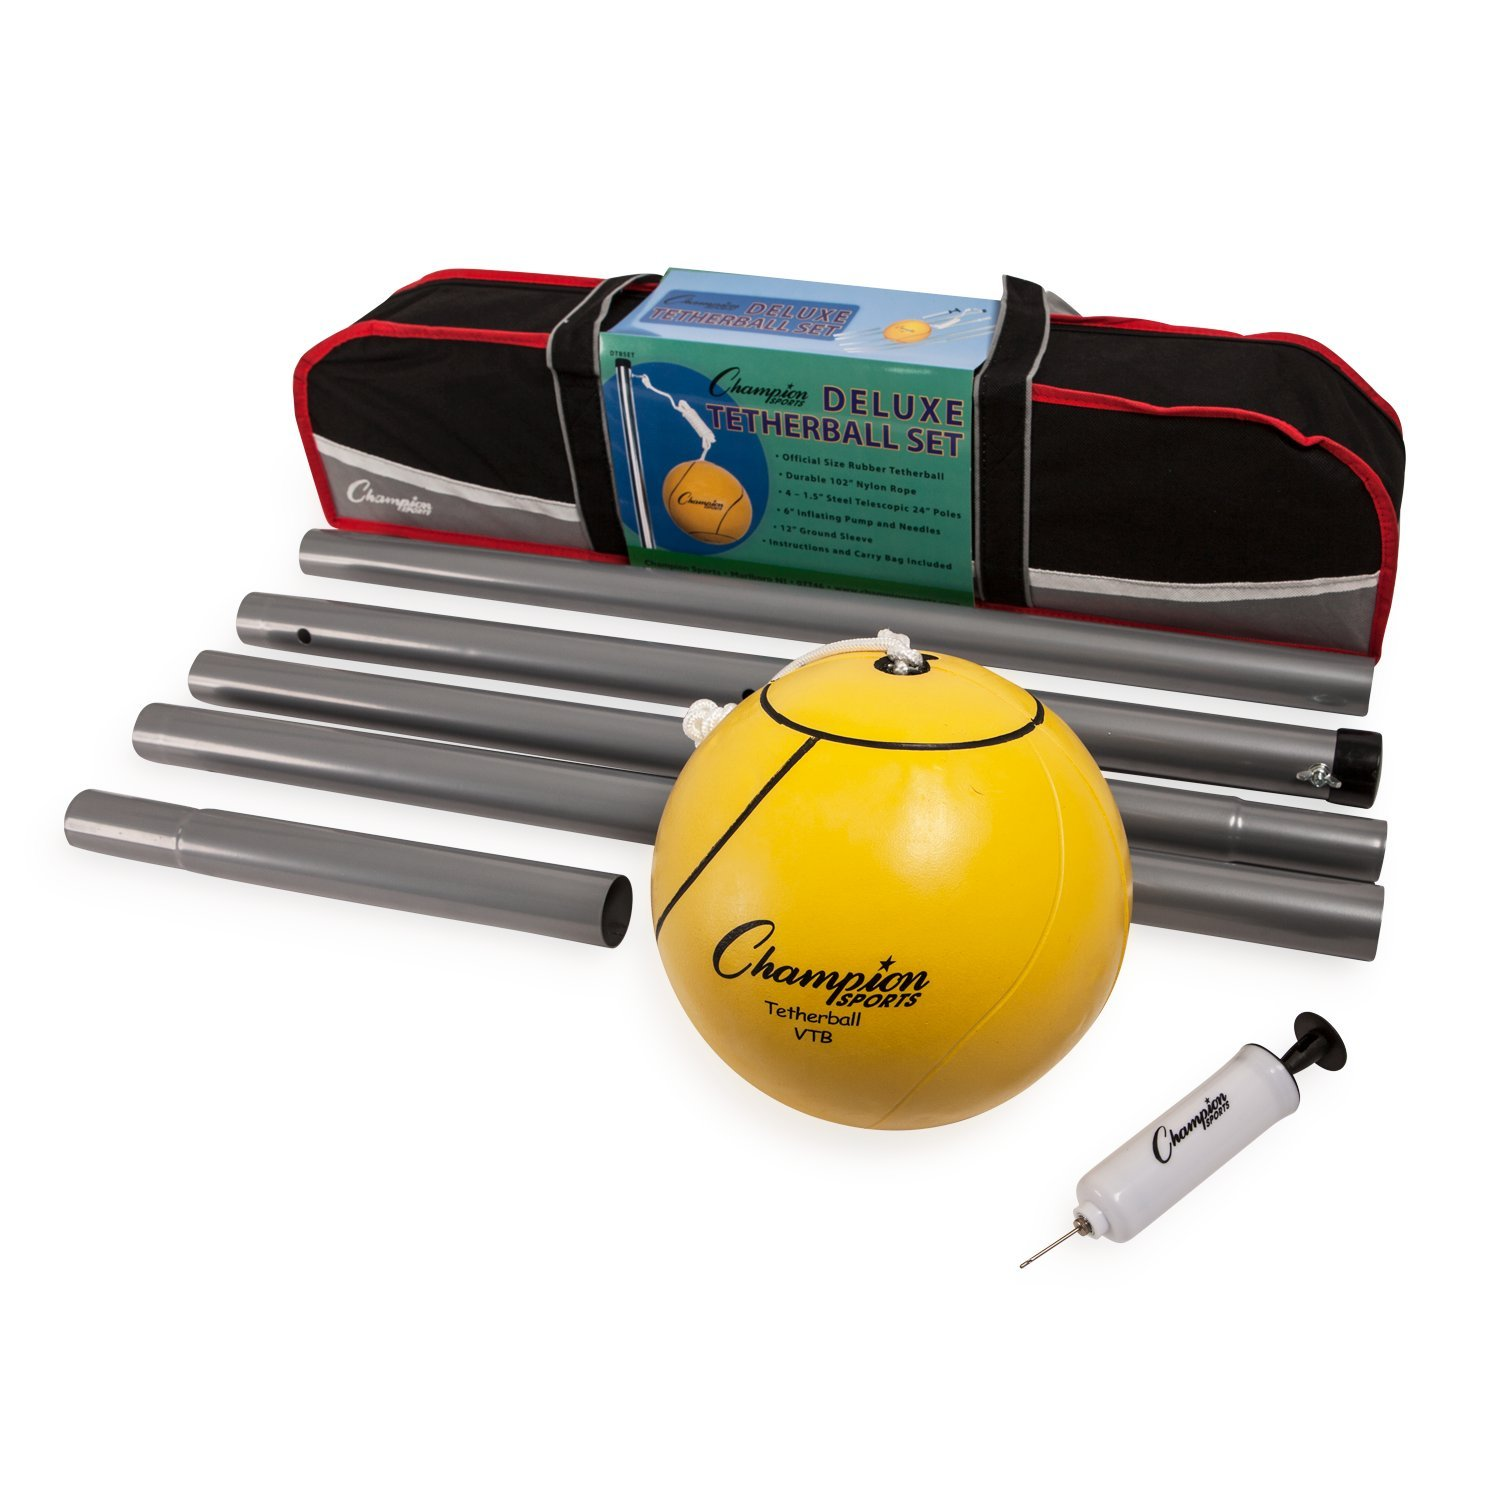 Champion Sports Deluxe Tether Ball Set DTBSET